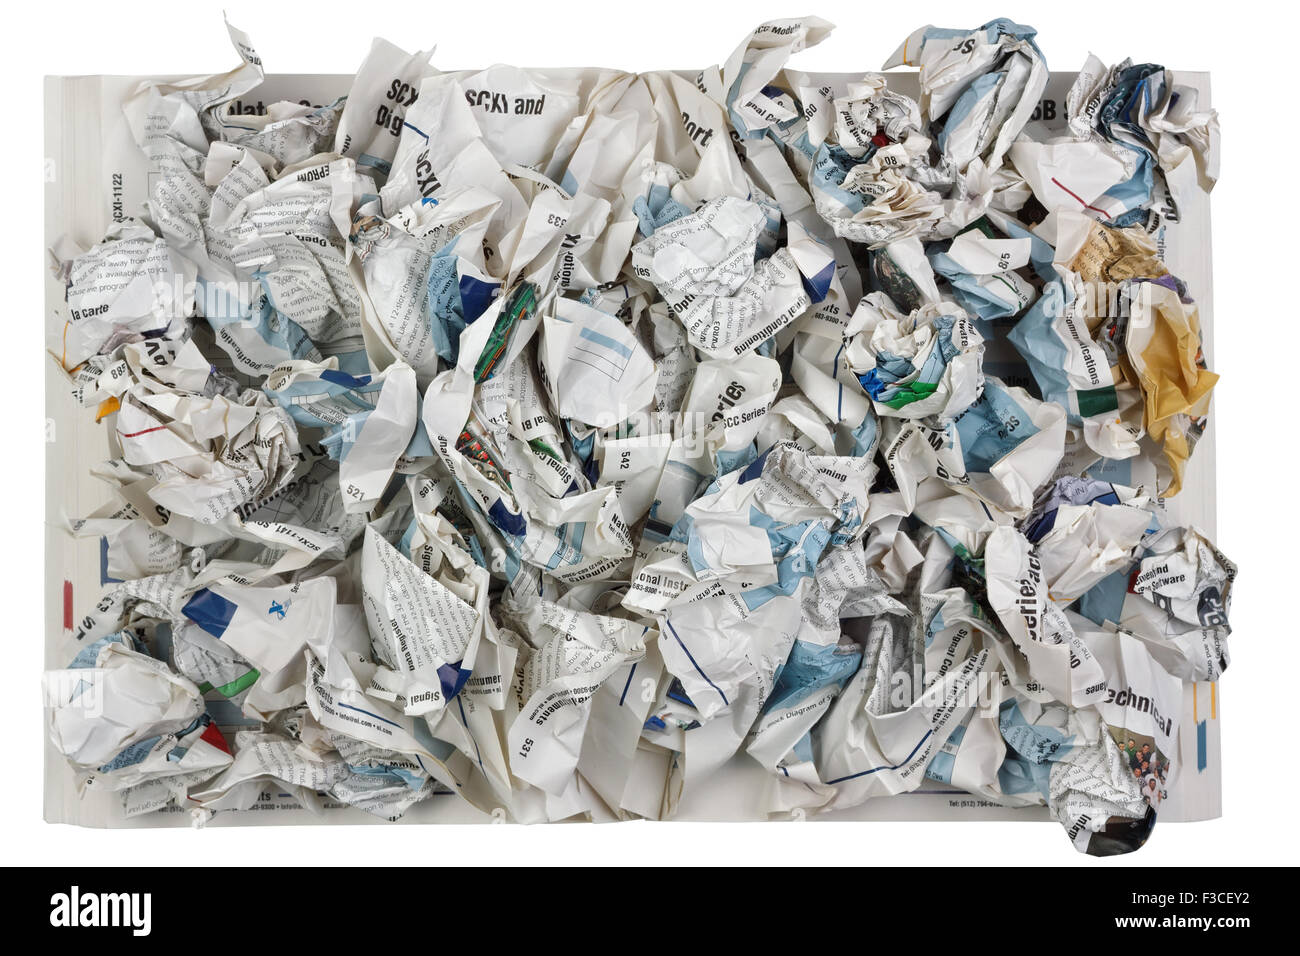 VILNIUS, LITHUANIA - SEPTEMBER 05, 2015: The crumpled pages of the scientific magazine as the concept of problems - Stock Image